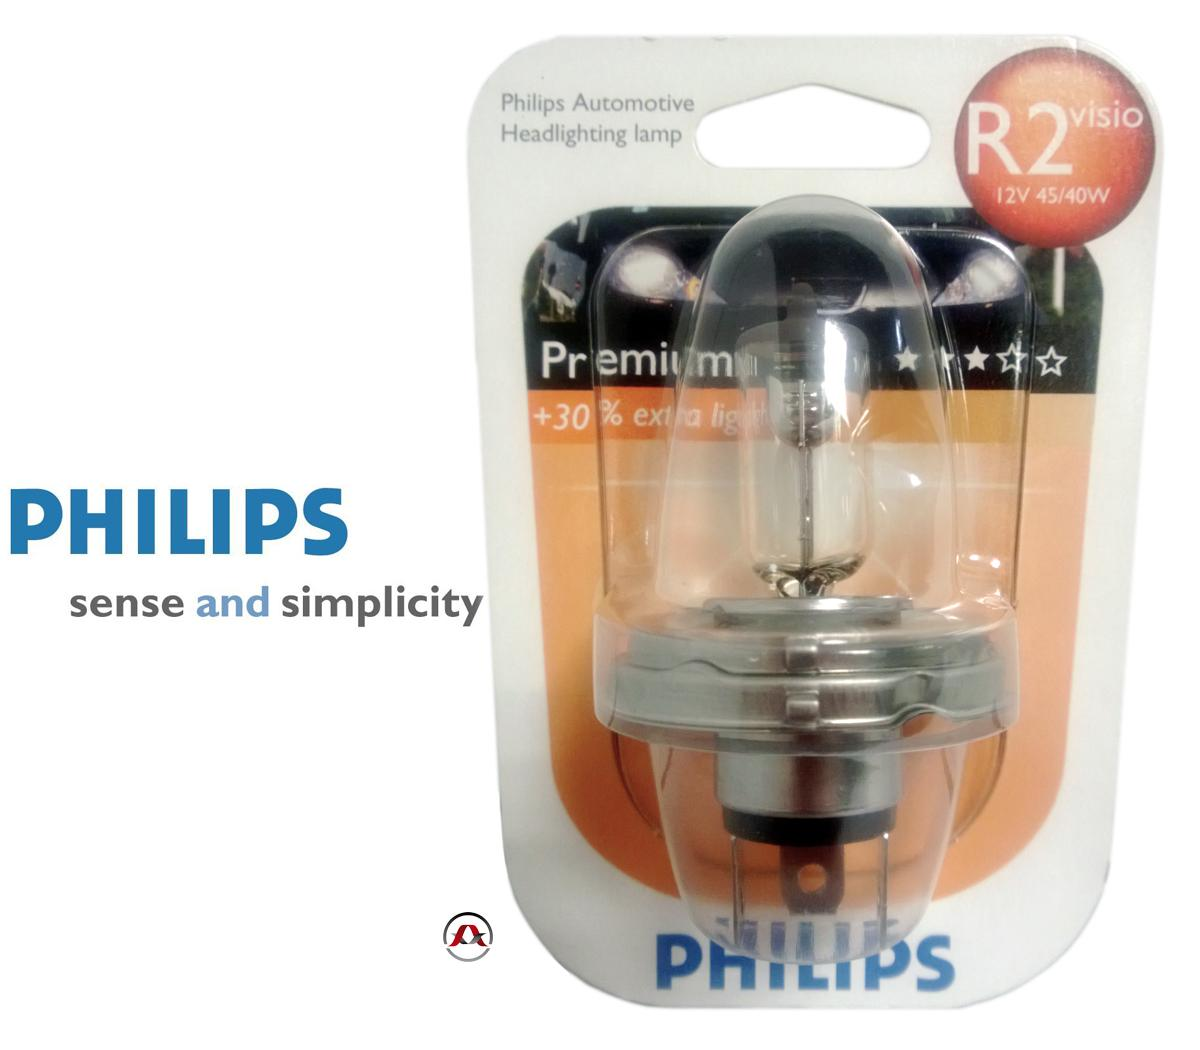 ampoule voiture r2 philips r2 vision 12v h4. Black Bedroom Furniture Sets. Home Design Ideas